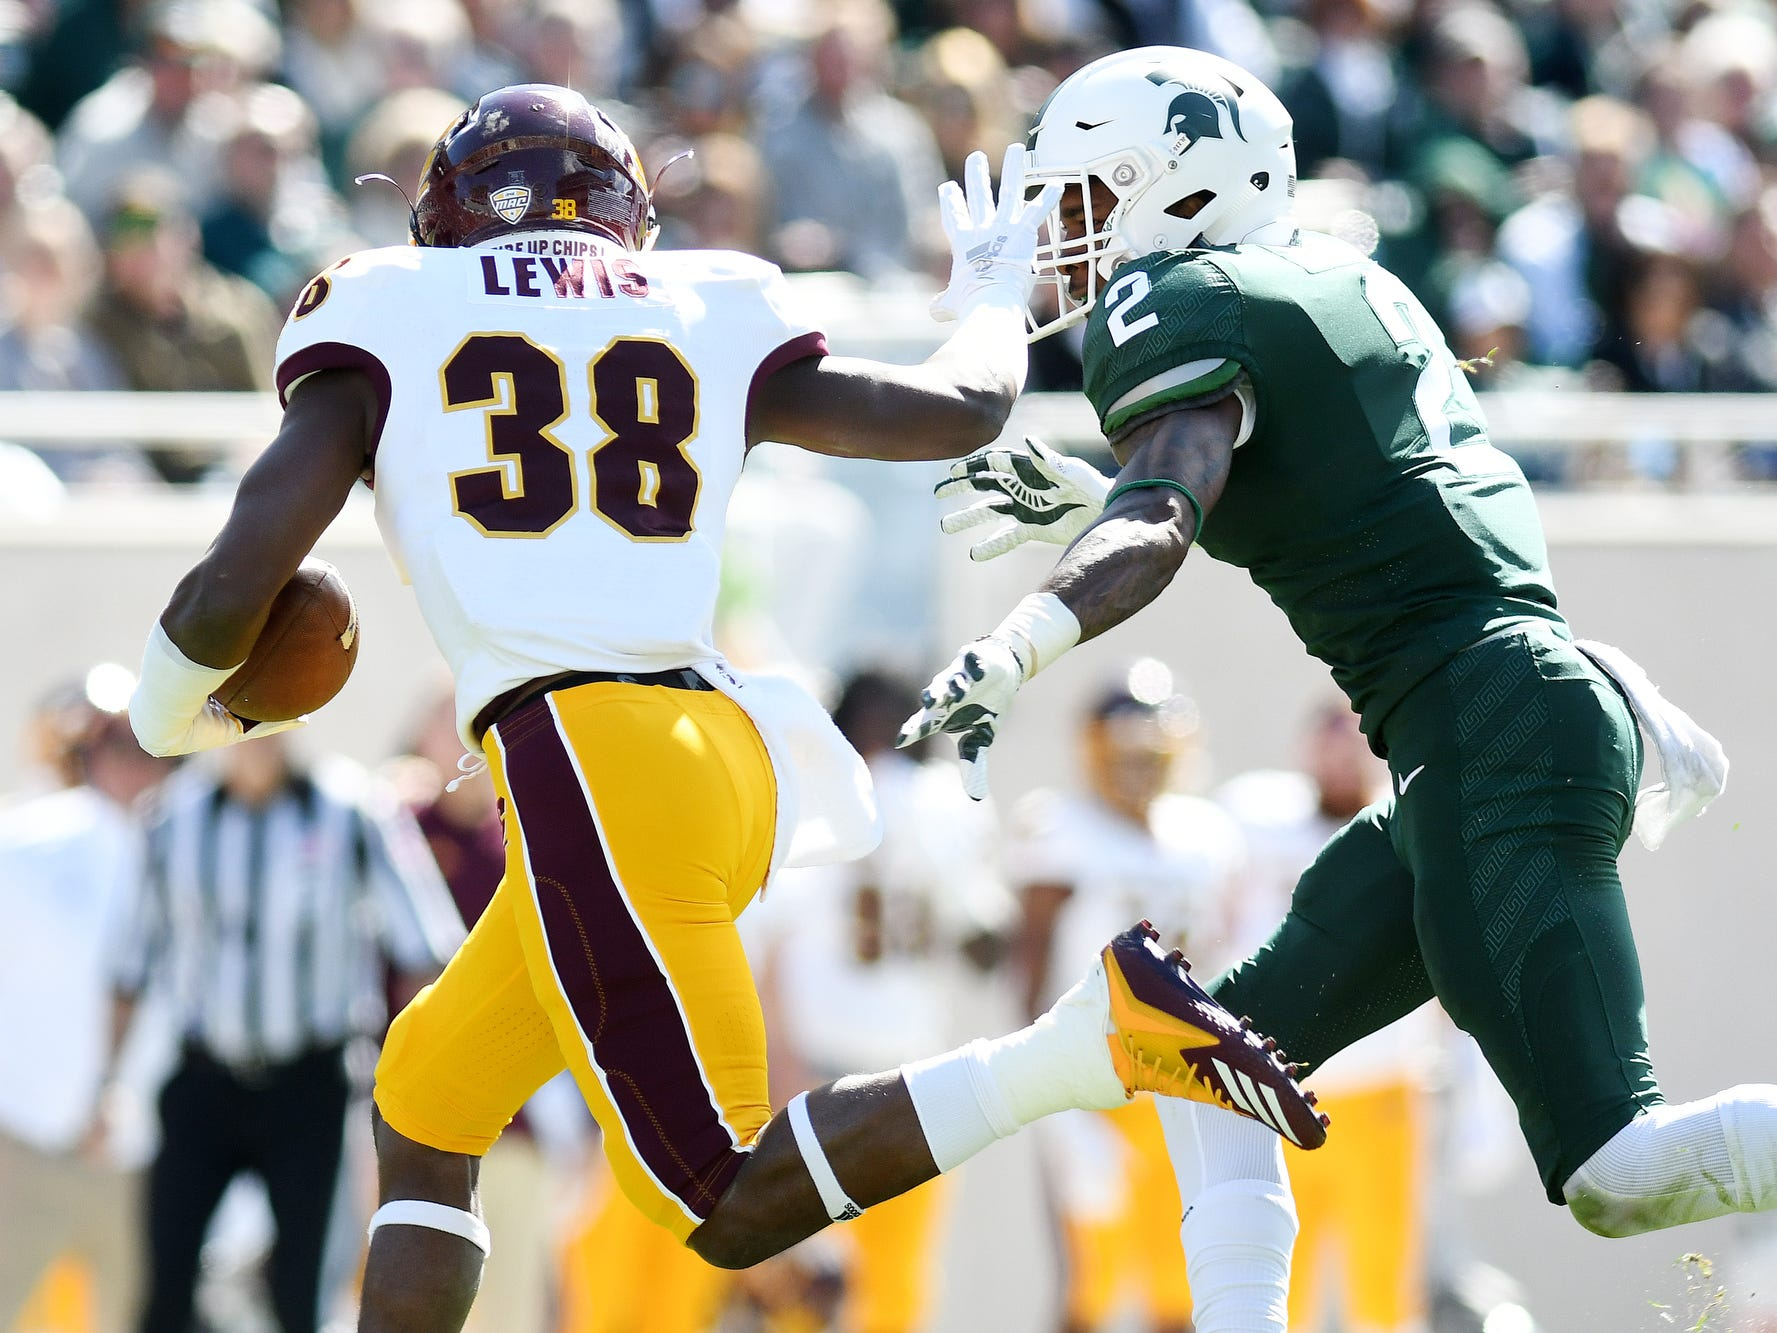 Michigan State's Justin Layne, right, closes in on Central Michigan's Kobe Lewis during the second quarter on Saturday, Sept. 29, 2018, at Spartan Stadium in East Lansing.